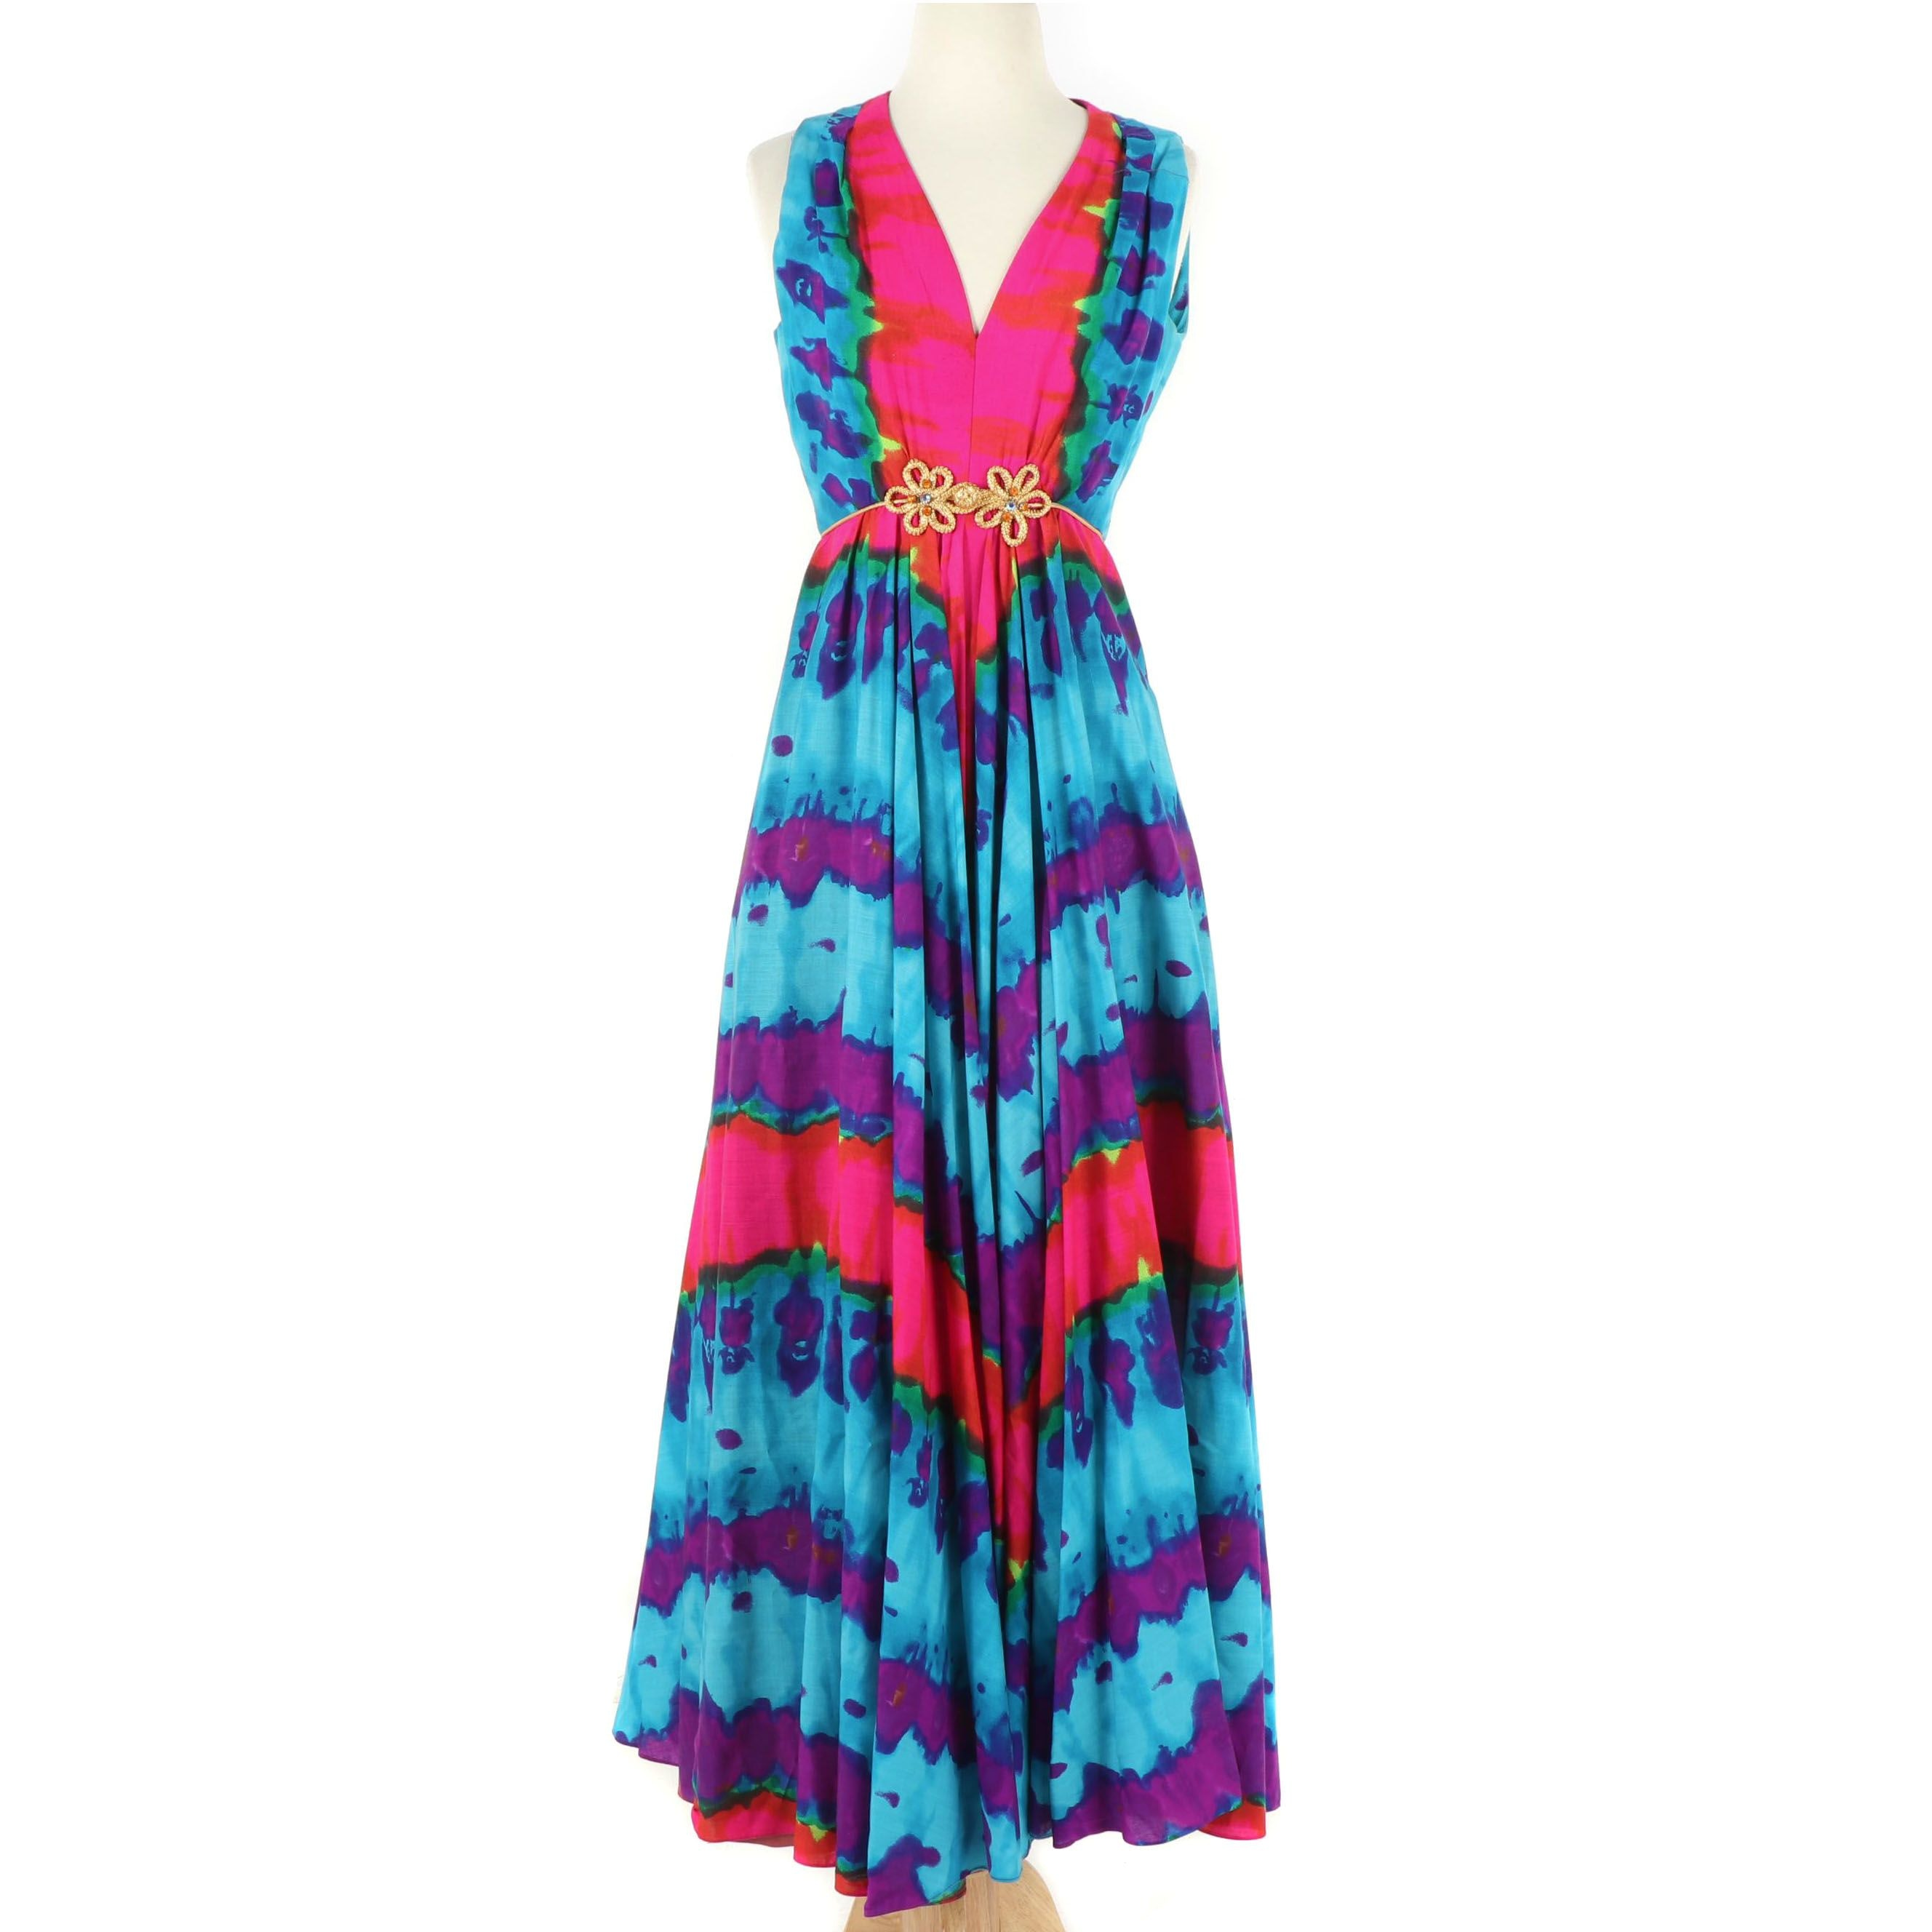 Sleeveless Multicolor Sleeveless Maxi Dress with V-Cut Neckline, 1970s Vintage